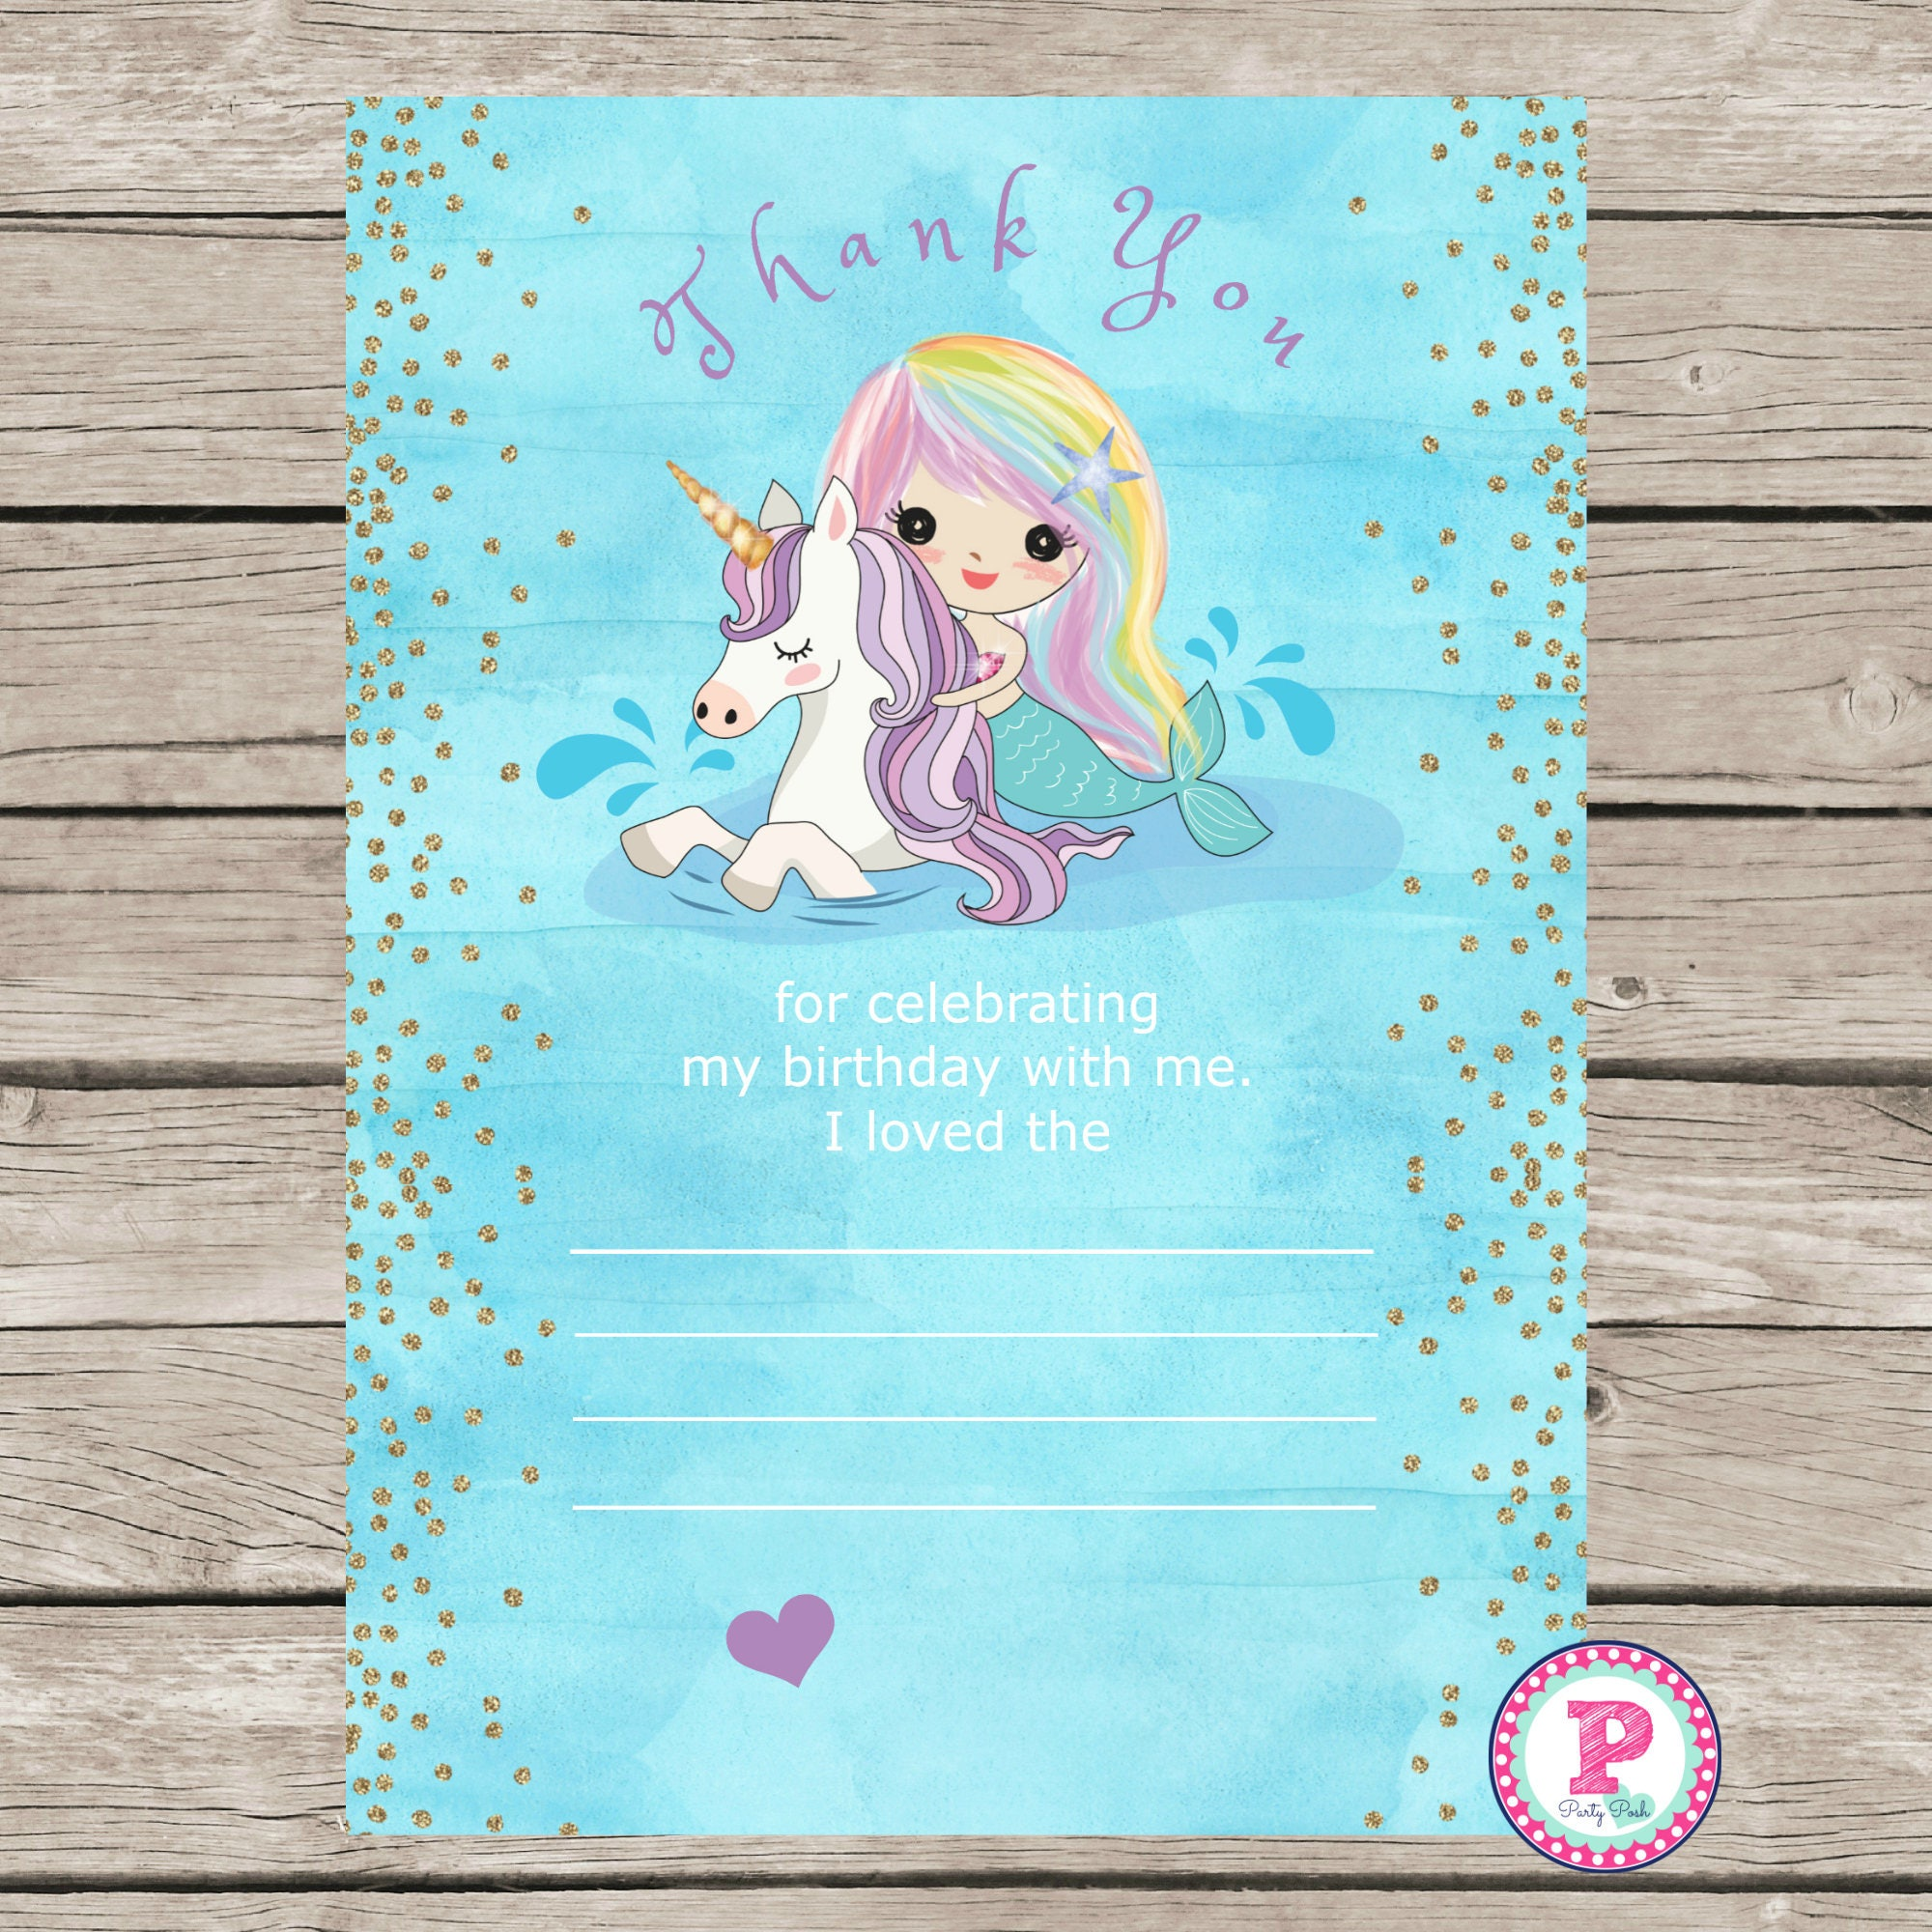 Mermaid Unicorn Birthday Party Thank You Cards Ideas Watercolor Pool Fill In Blank Printable Horse Splish Splash Instant Download 5x7